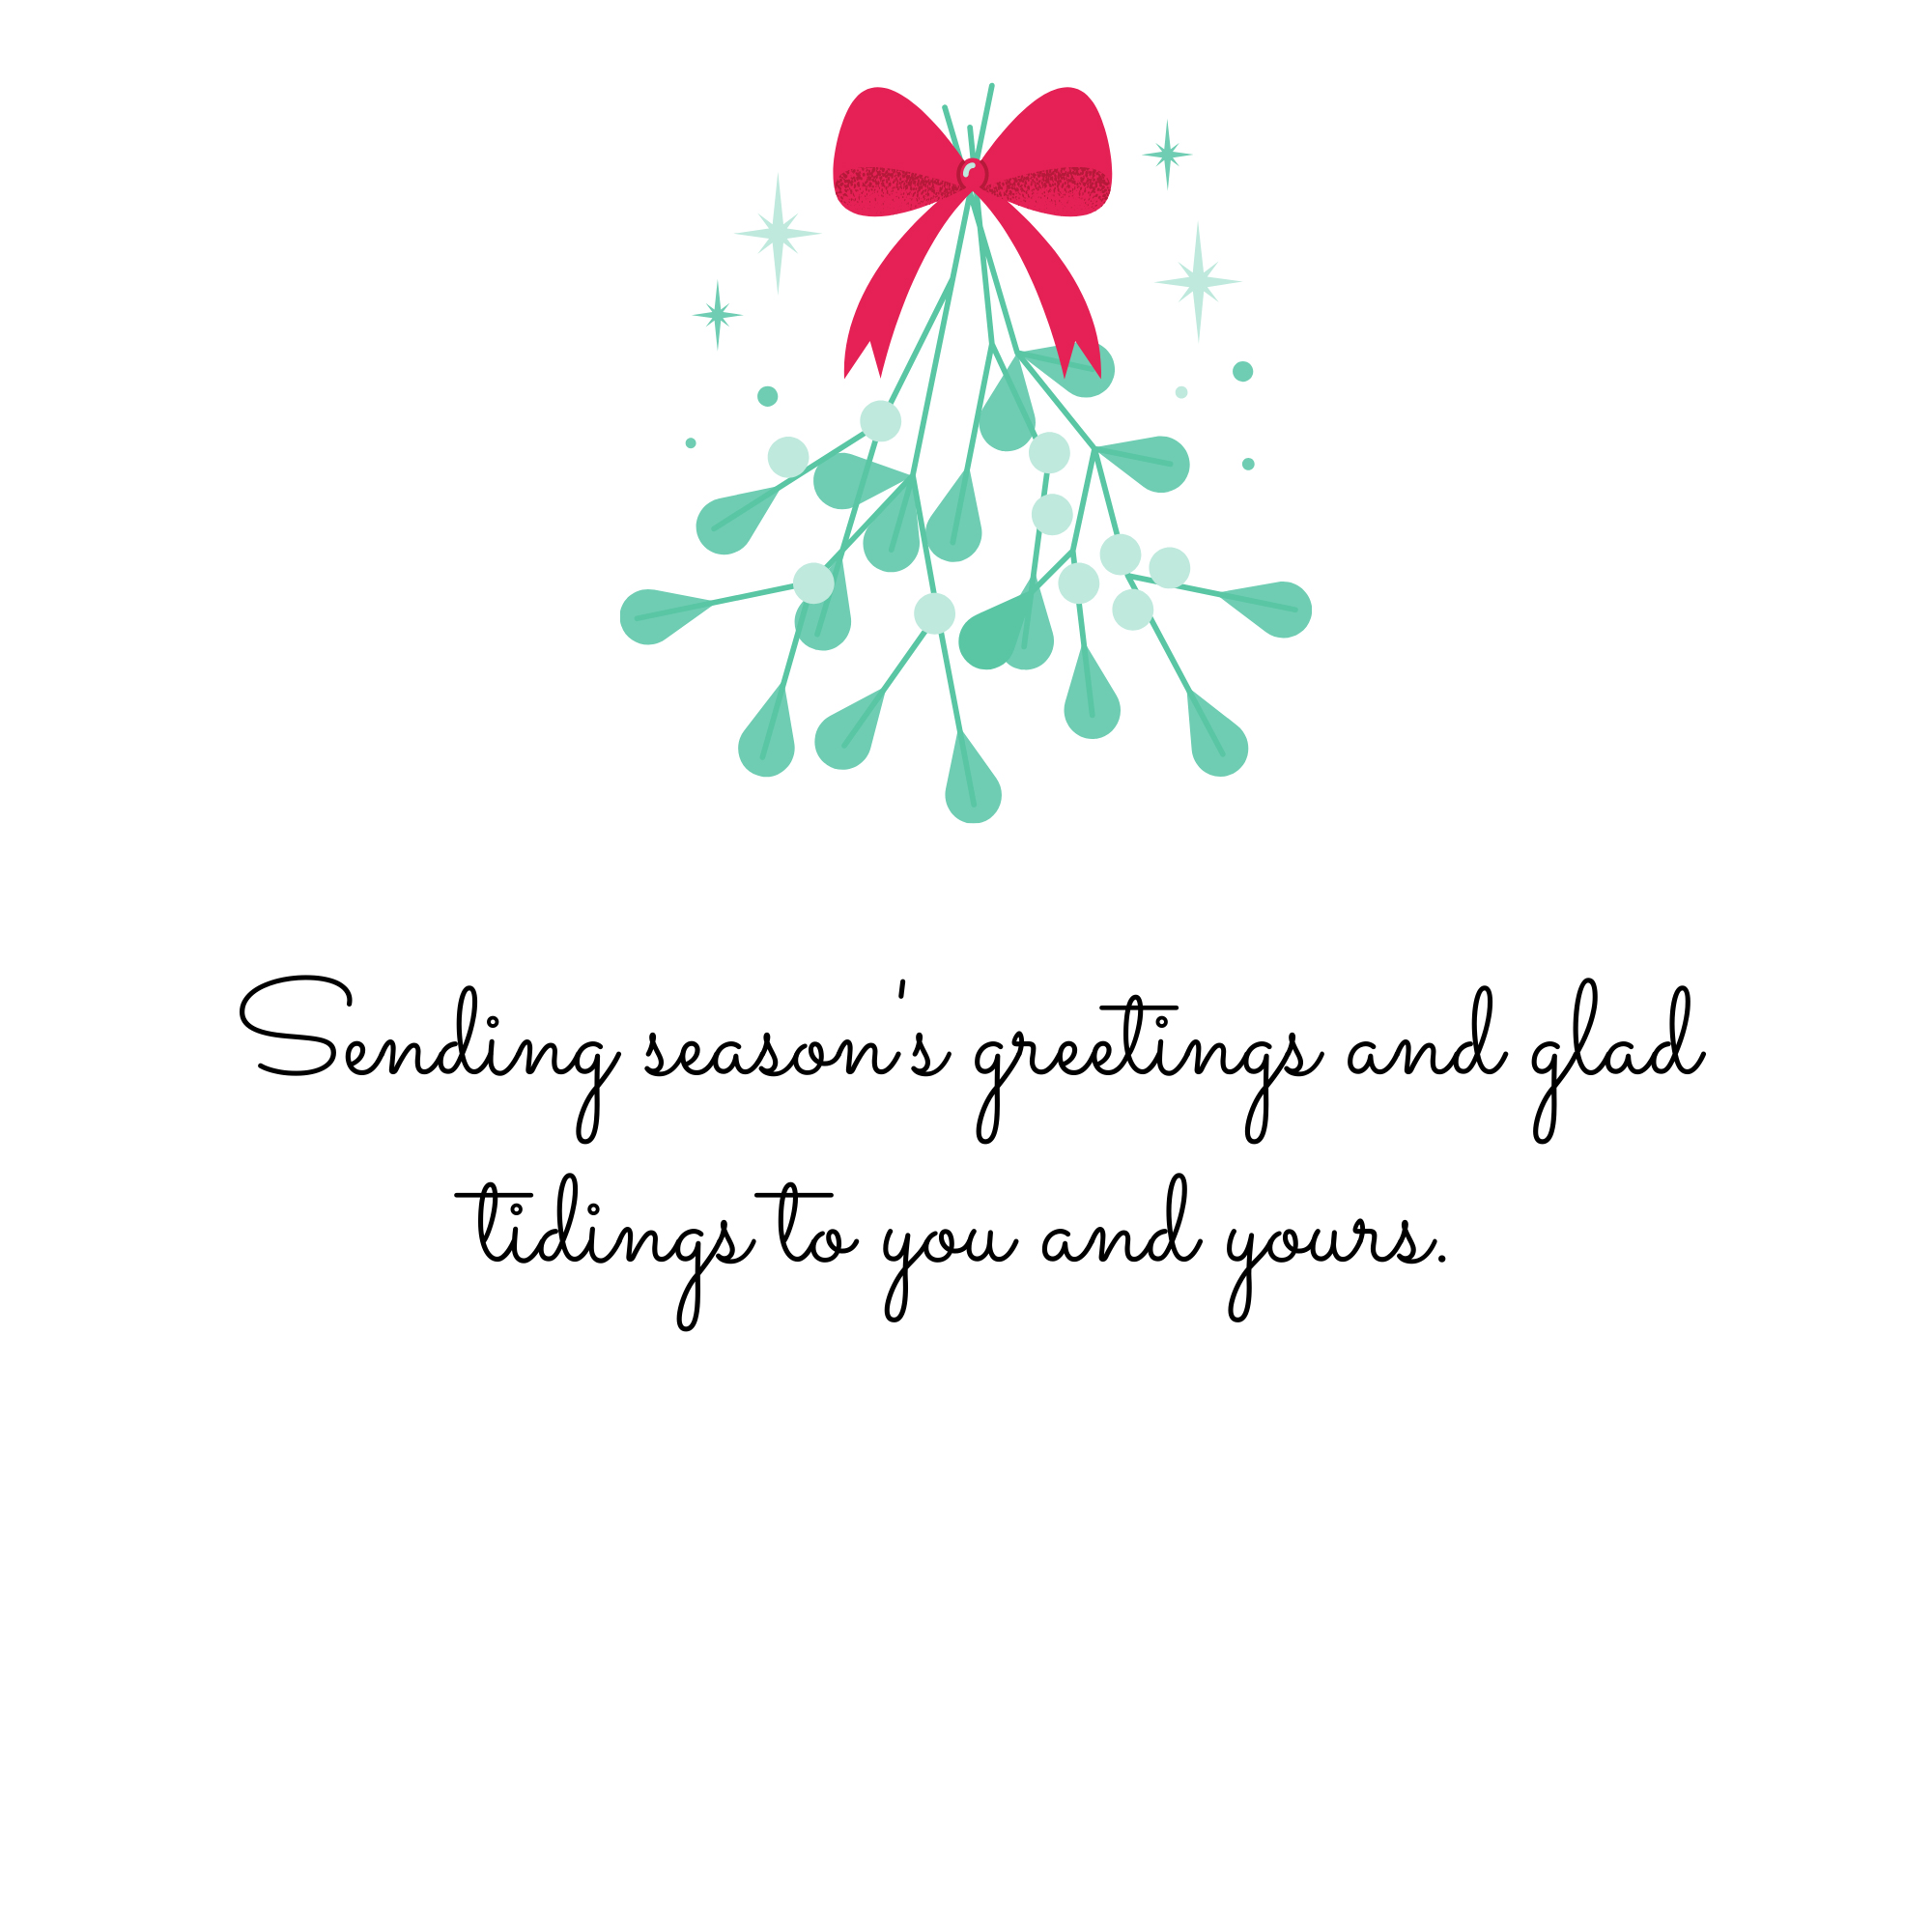 Sending season's greetings and glad tidings to you and yours